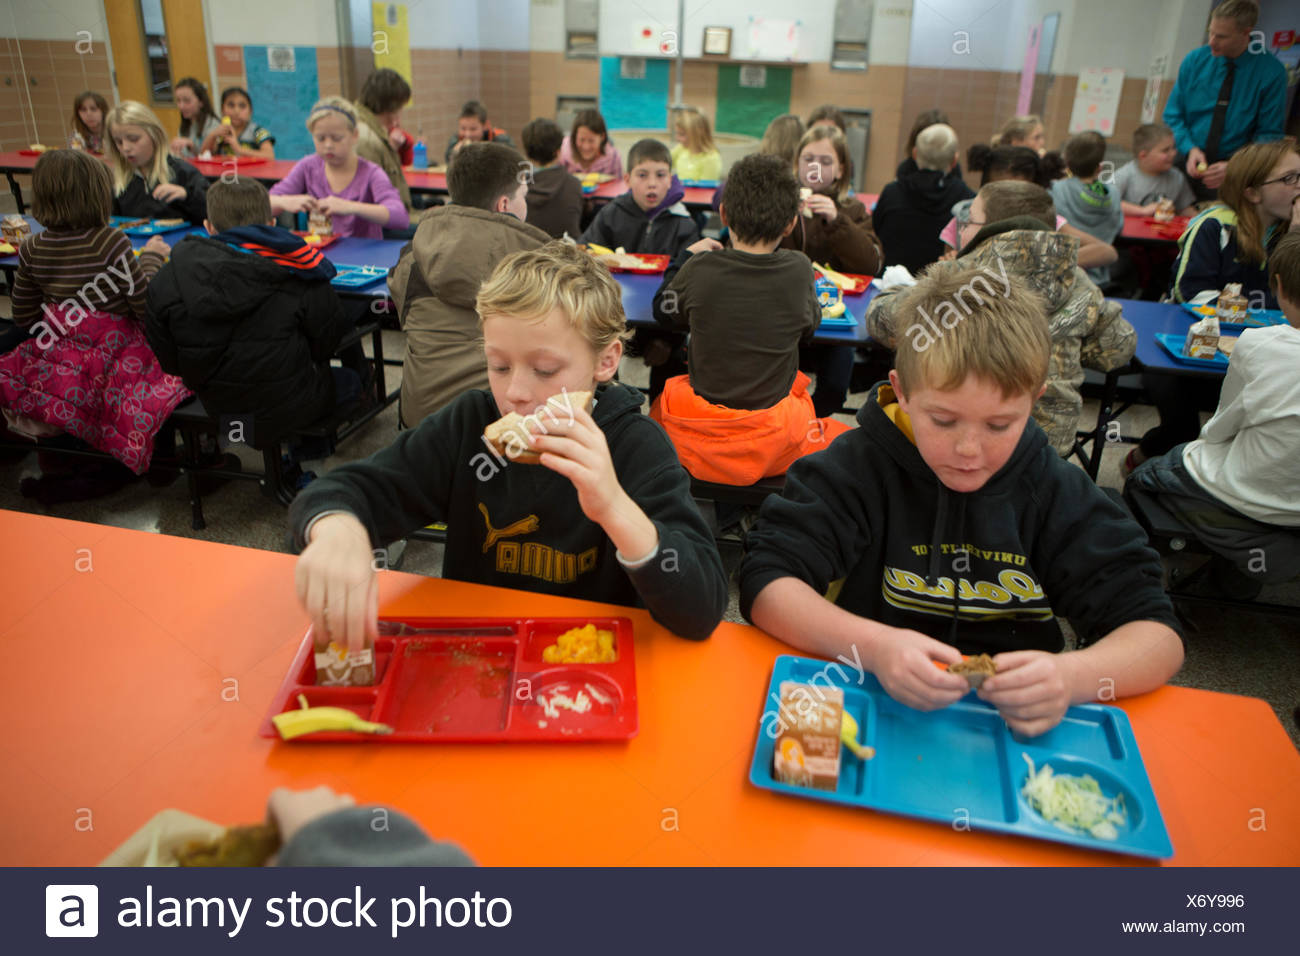 Elementary school students receive free breakfast provided by the school. - Stock Image